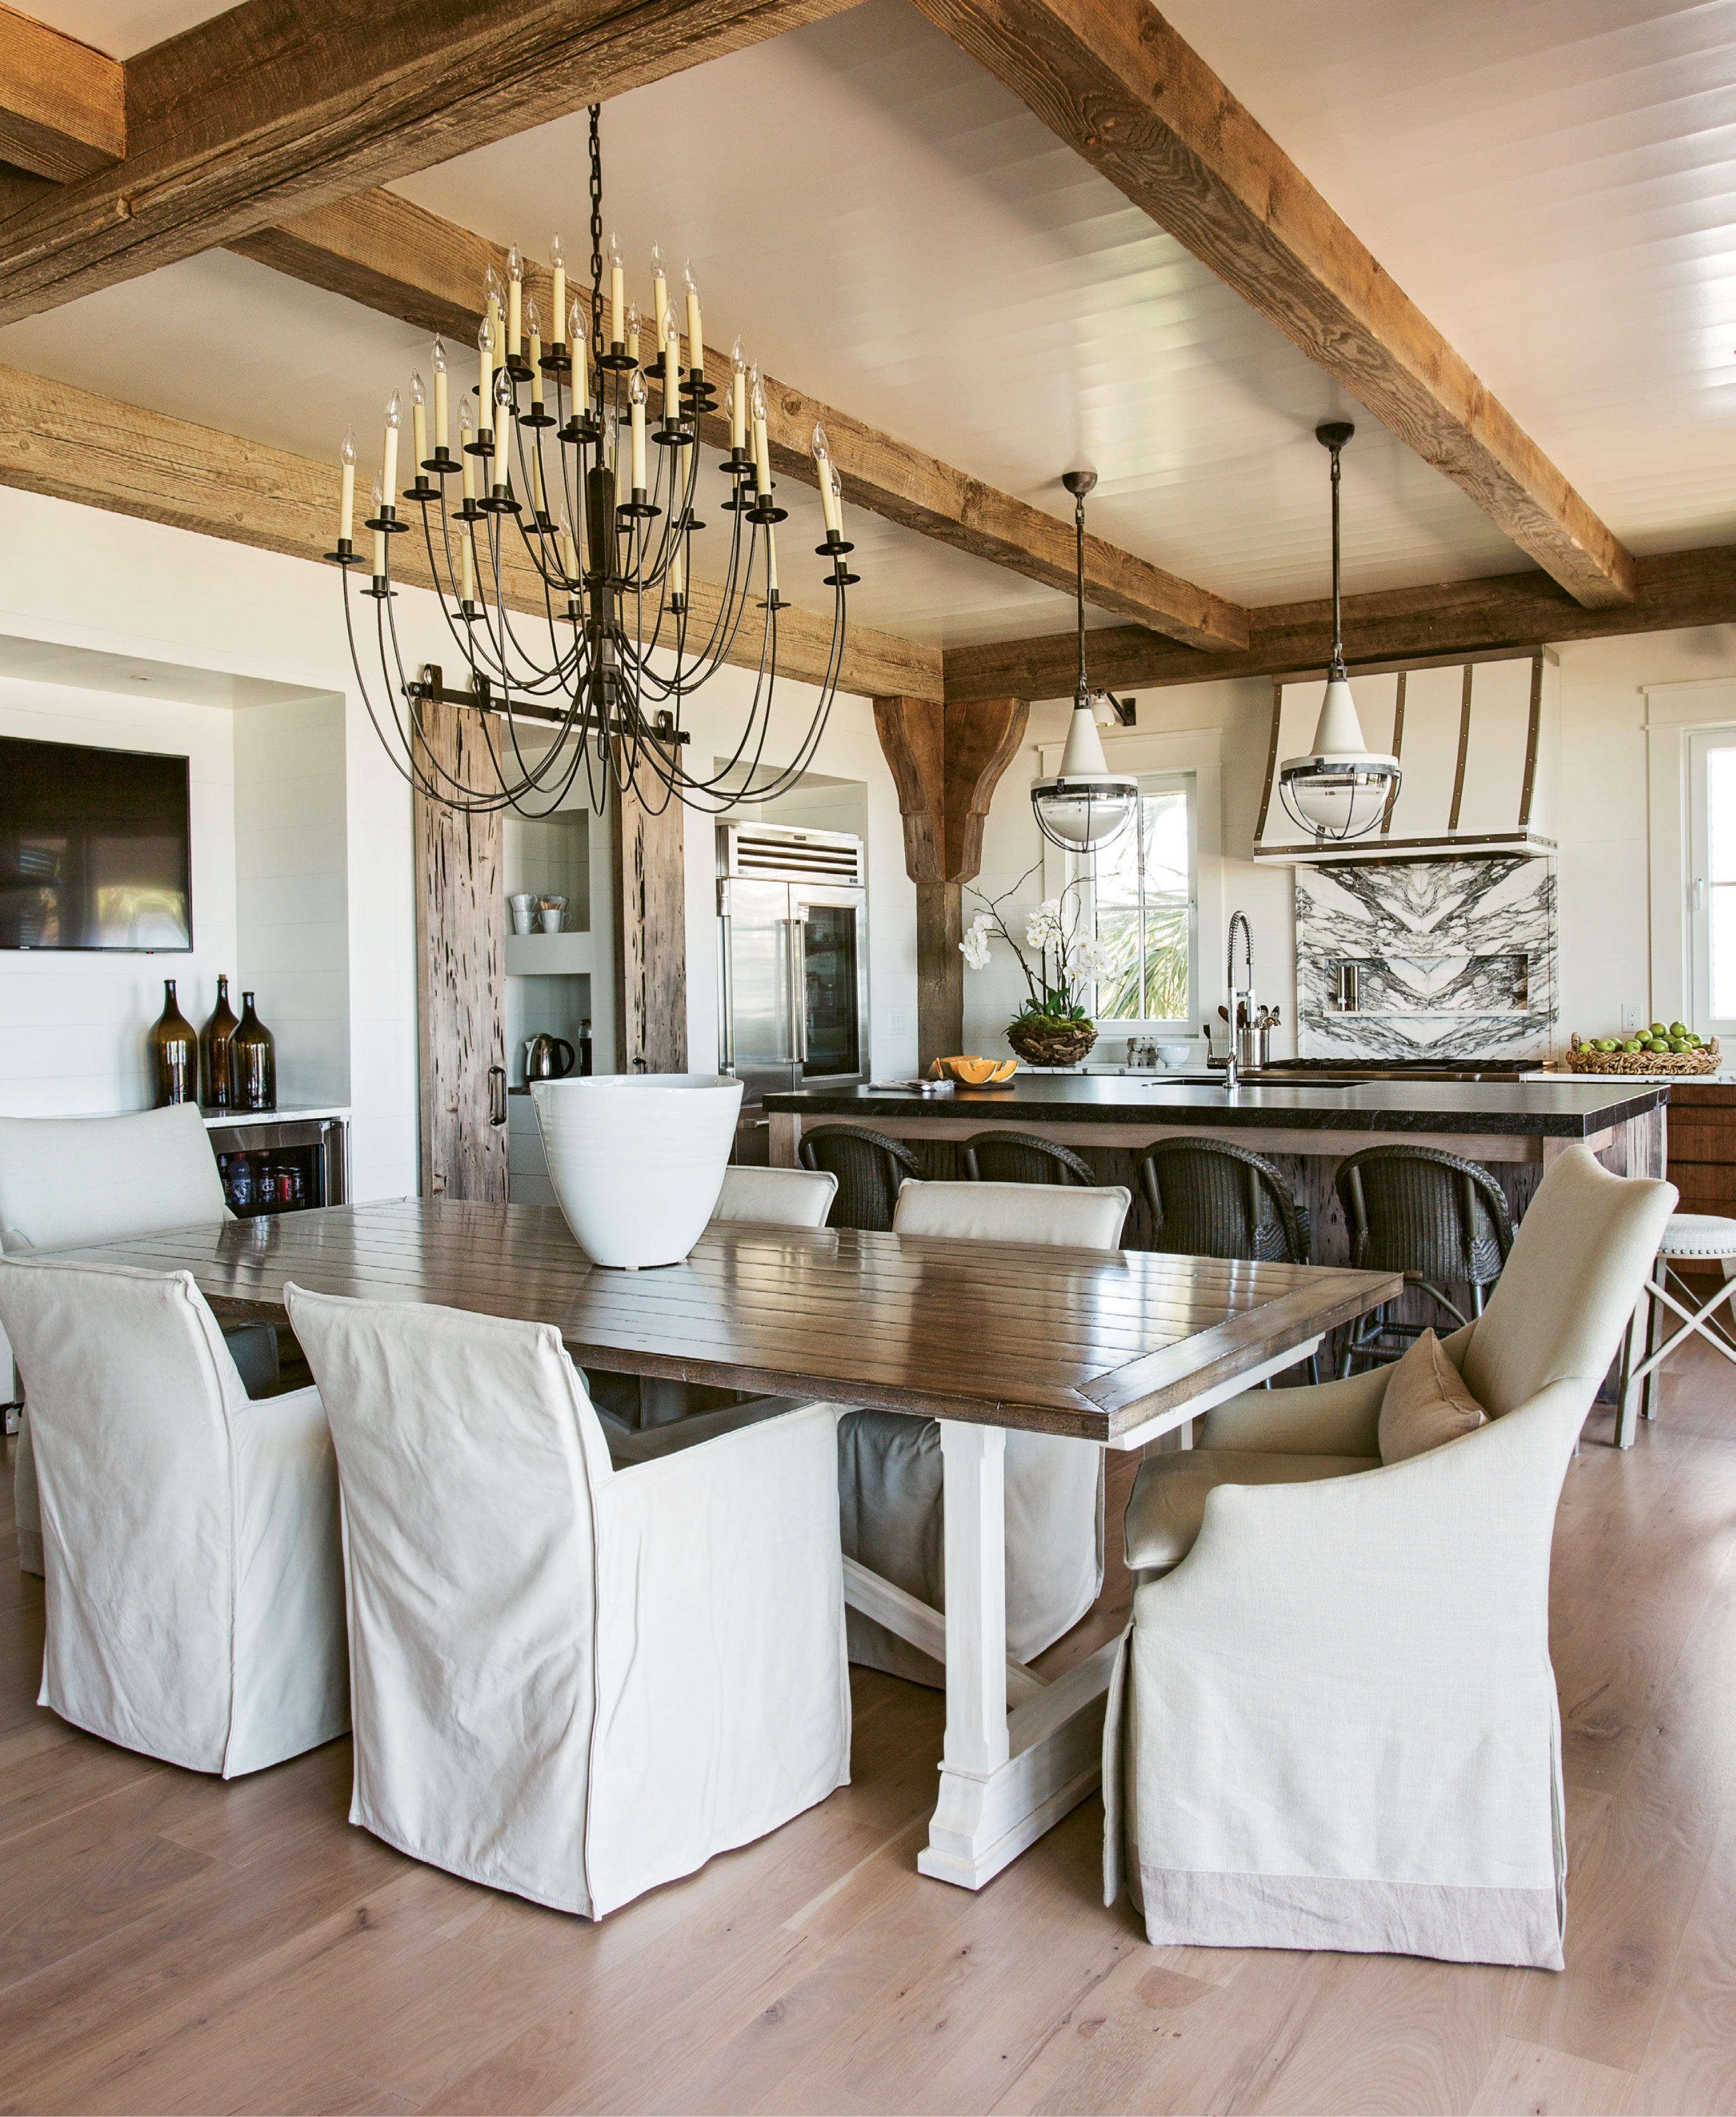 White leather chairs by Lee Industries flank the kitchen table, which can expand to accommodate 14.